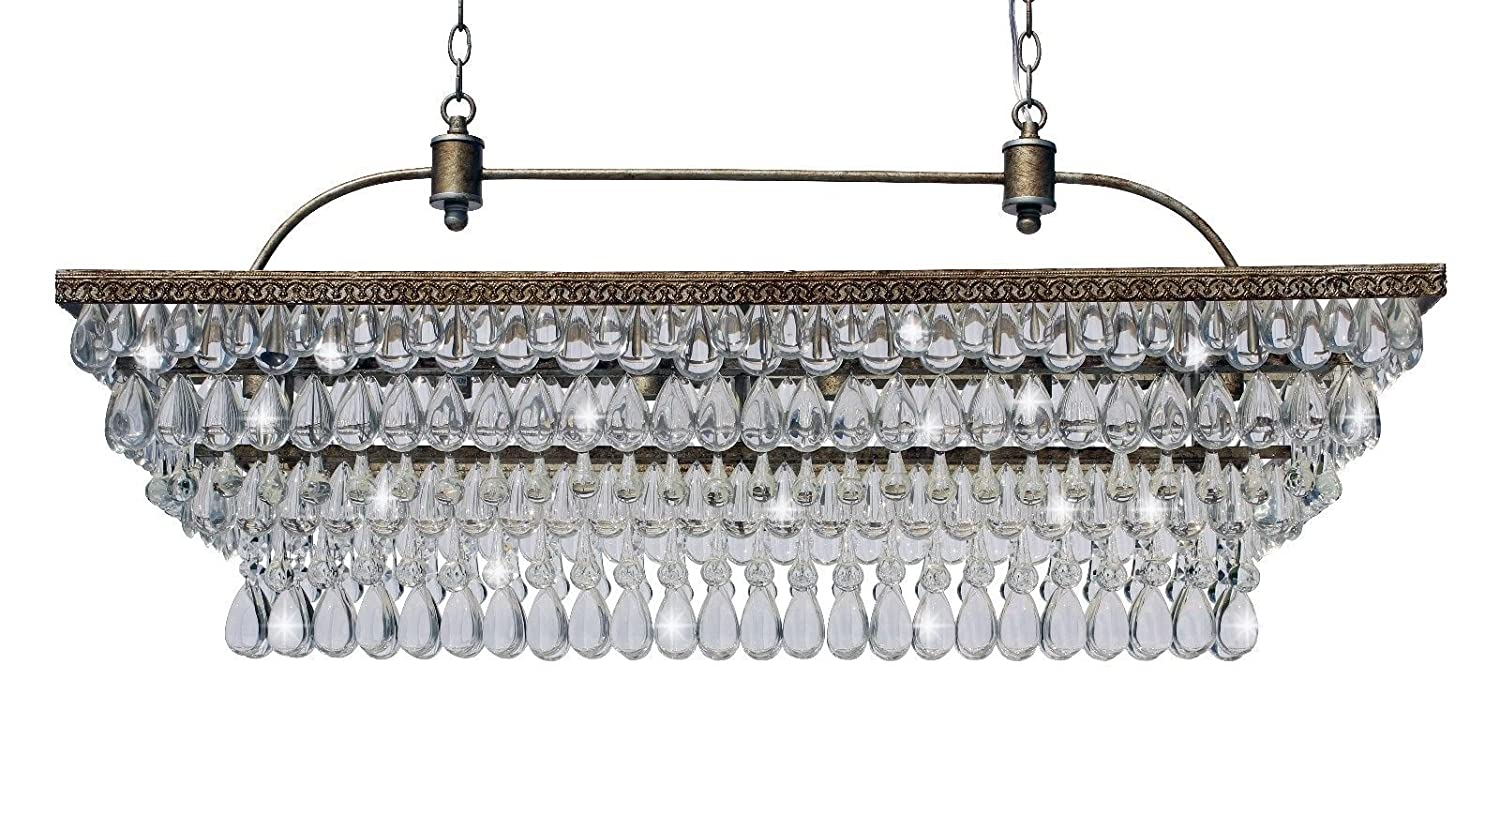 The weston 40 inch rectangular glass drop crystal chandelier the weston 40 inch rectangular glass drop crystal chandelier antique copper amazon mozeypictures Images